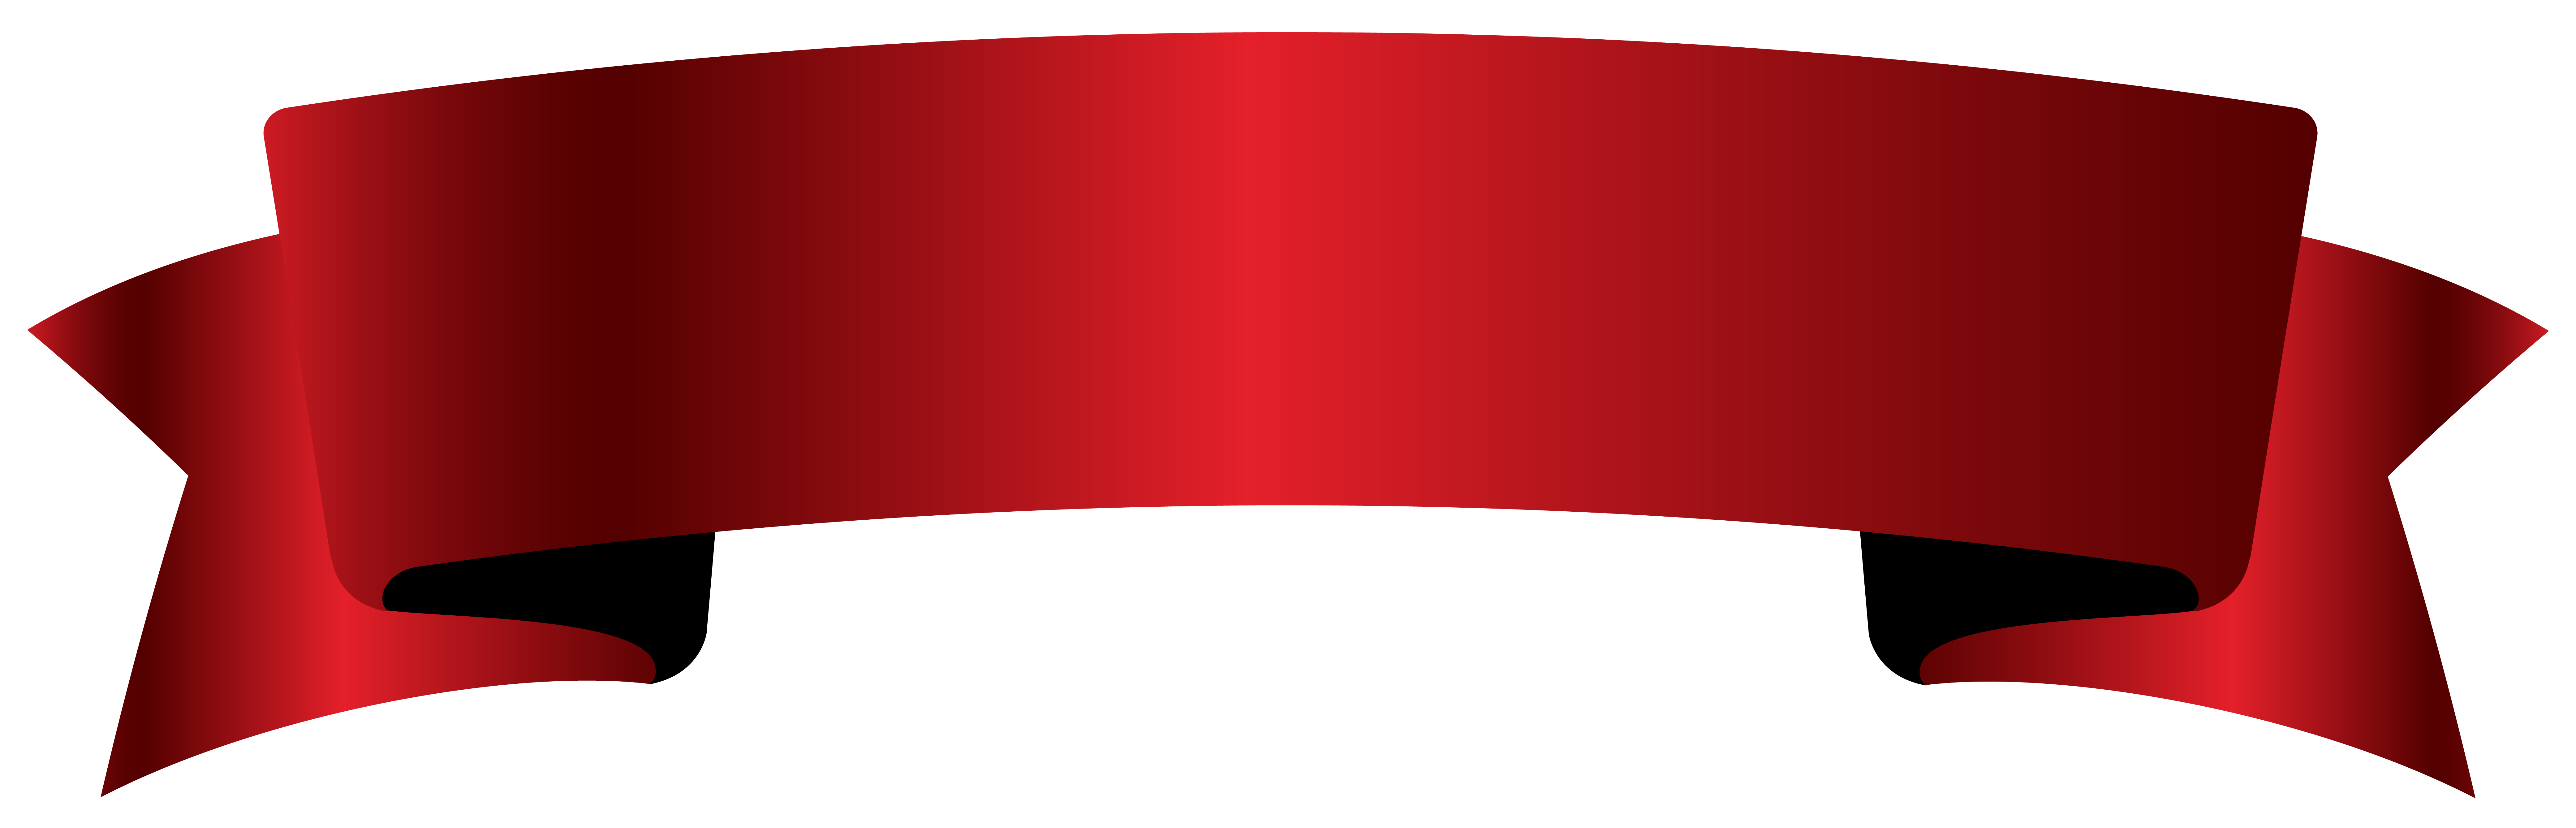 Red Banner PNG Clipart Picture.